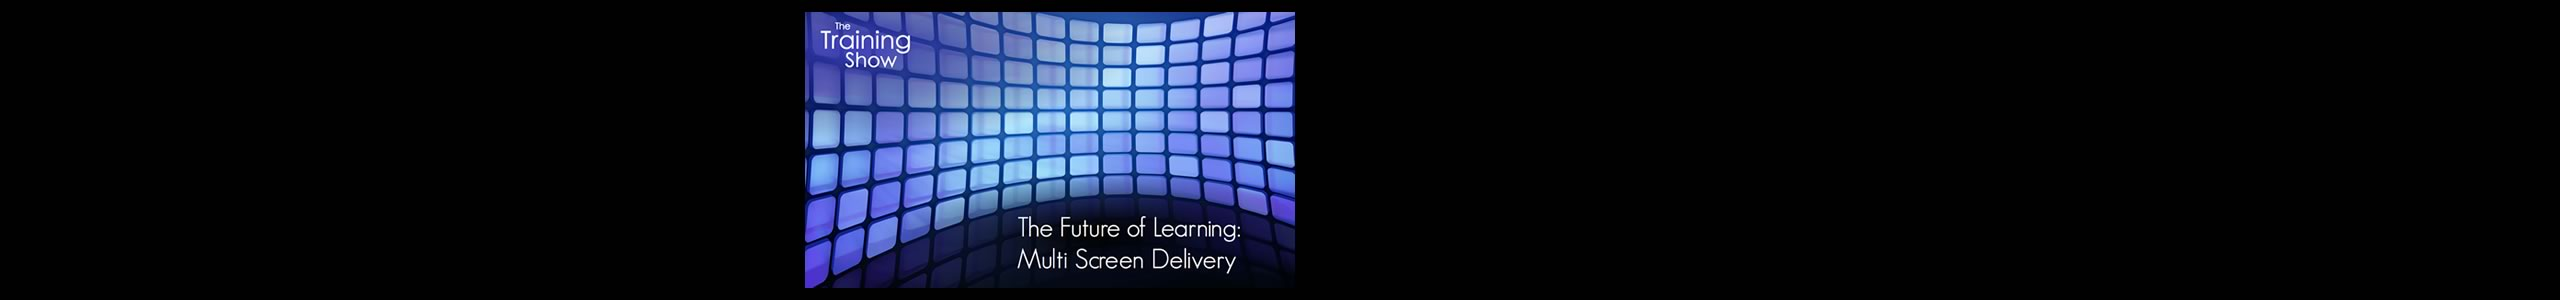 The Future of Learning : Multi Screen Delivery